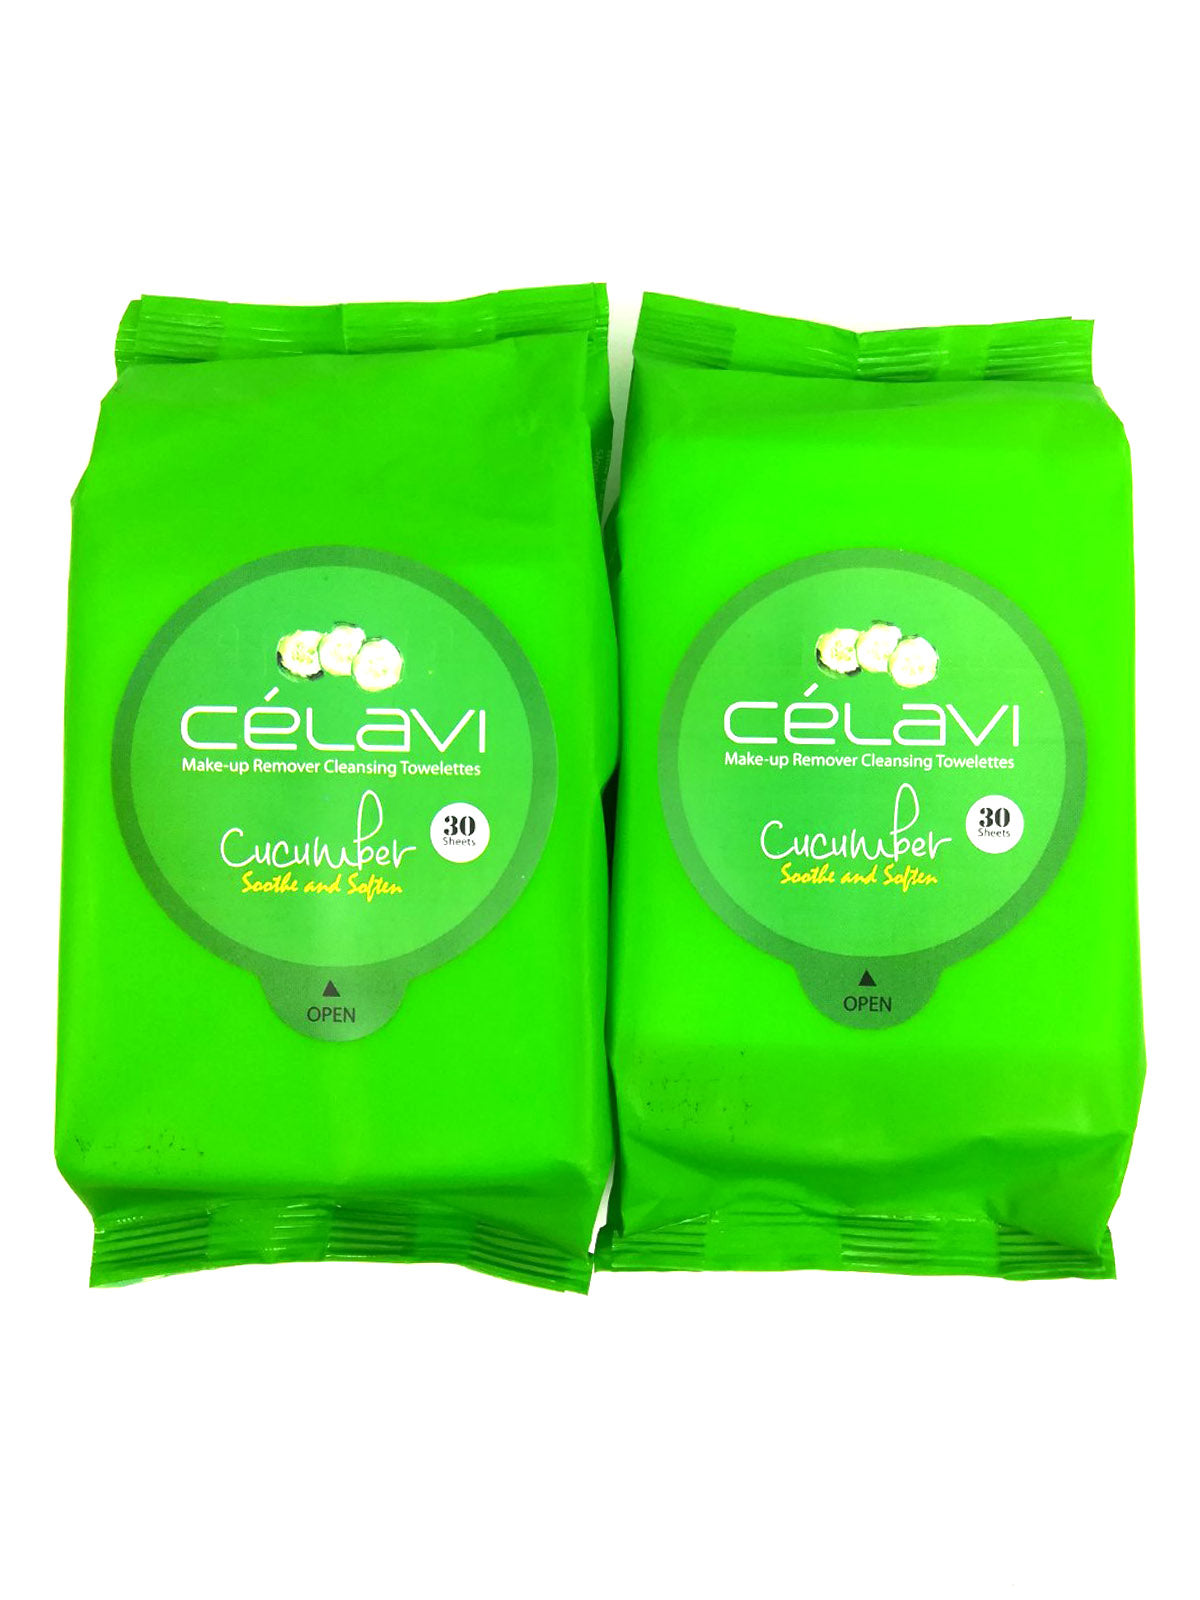 Makeup Remover Cleansing Wipes Removing Towelettes 2 Packs - 60 Sheets